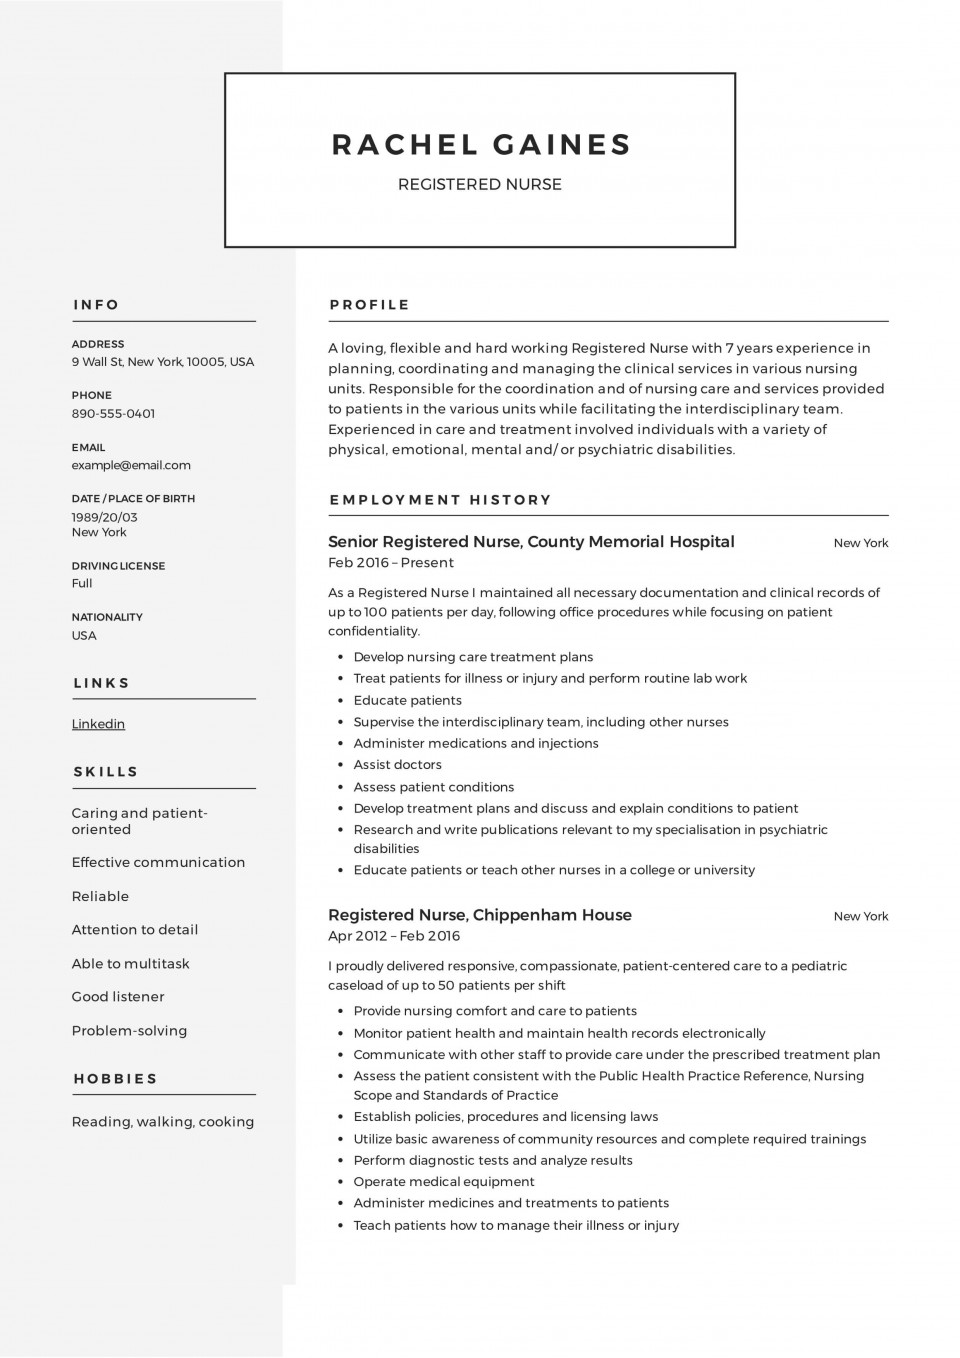 007 Breathtaking Resume Template For Nurse High Def  Sample Nursing Assistant With No Experience Rn' Free960